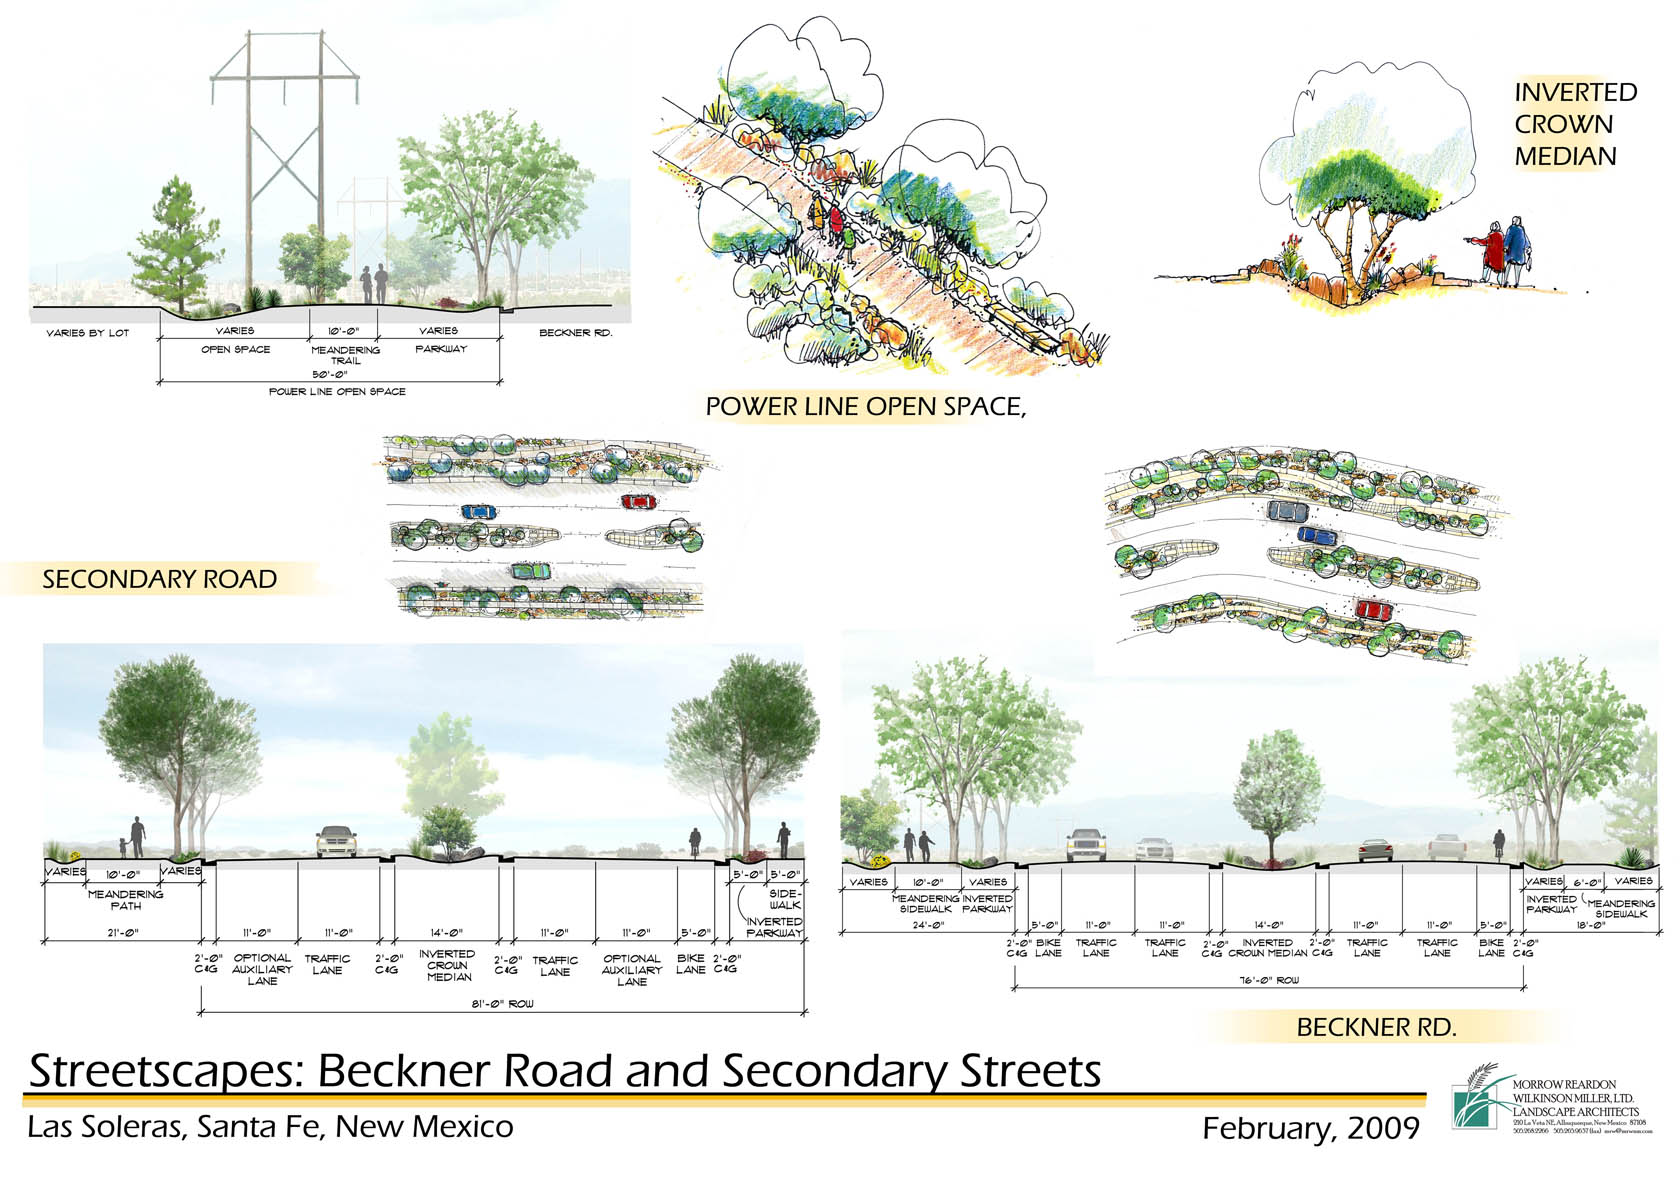 Design concepts for roadways in Las Soleras